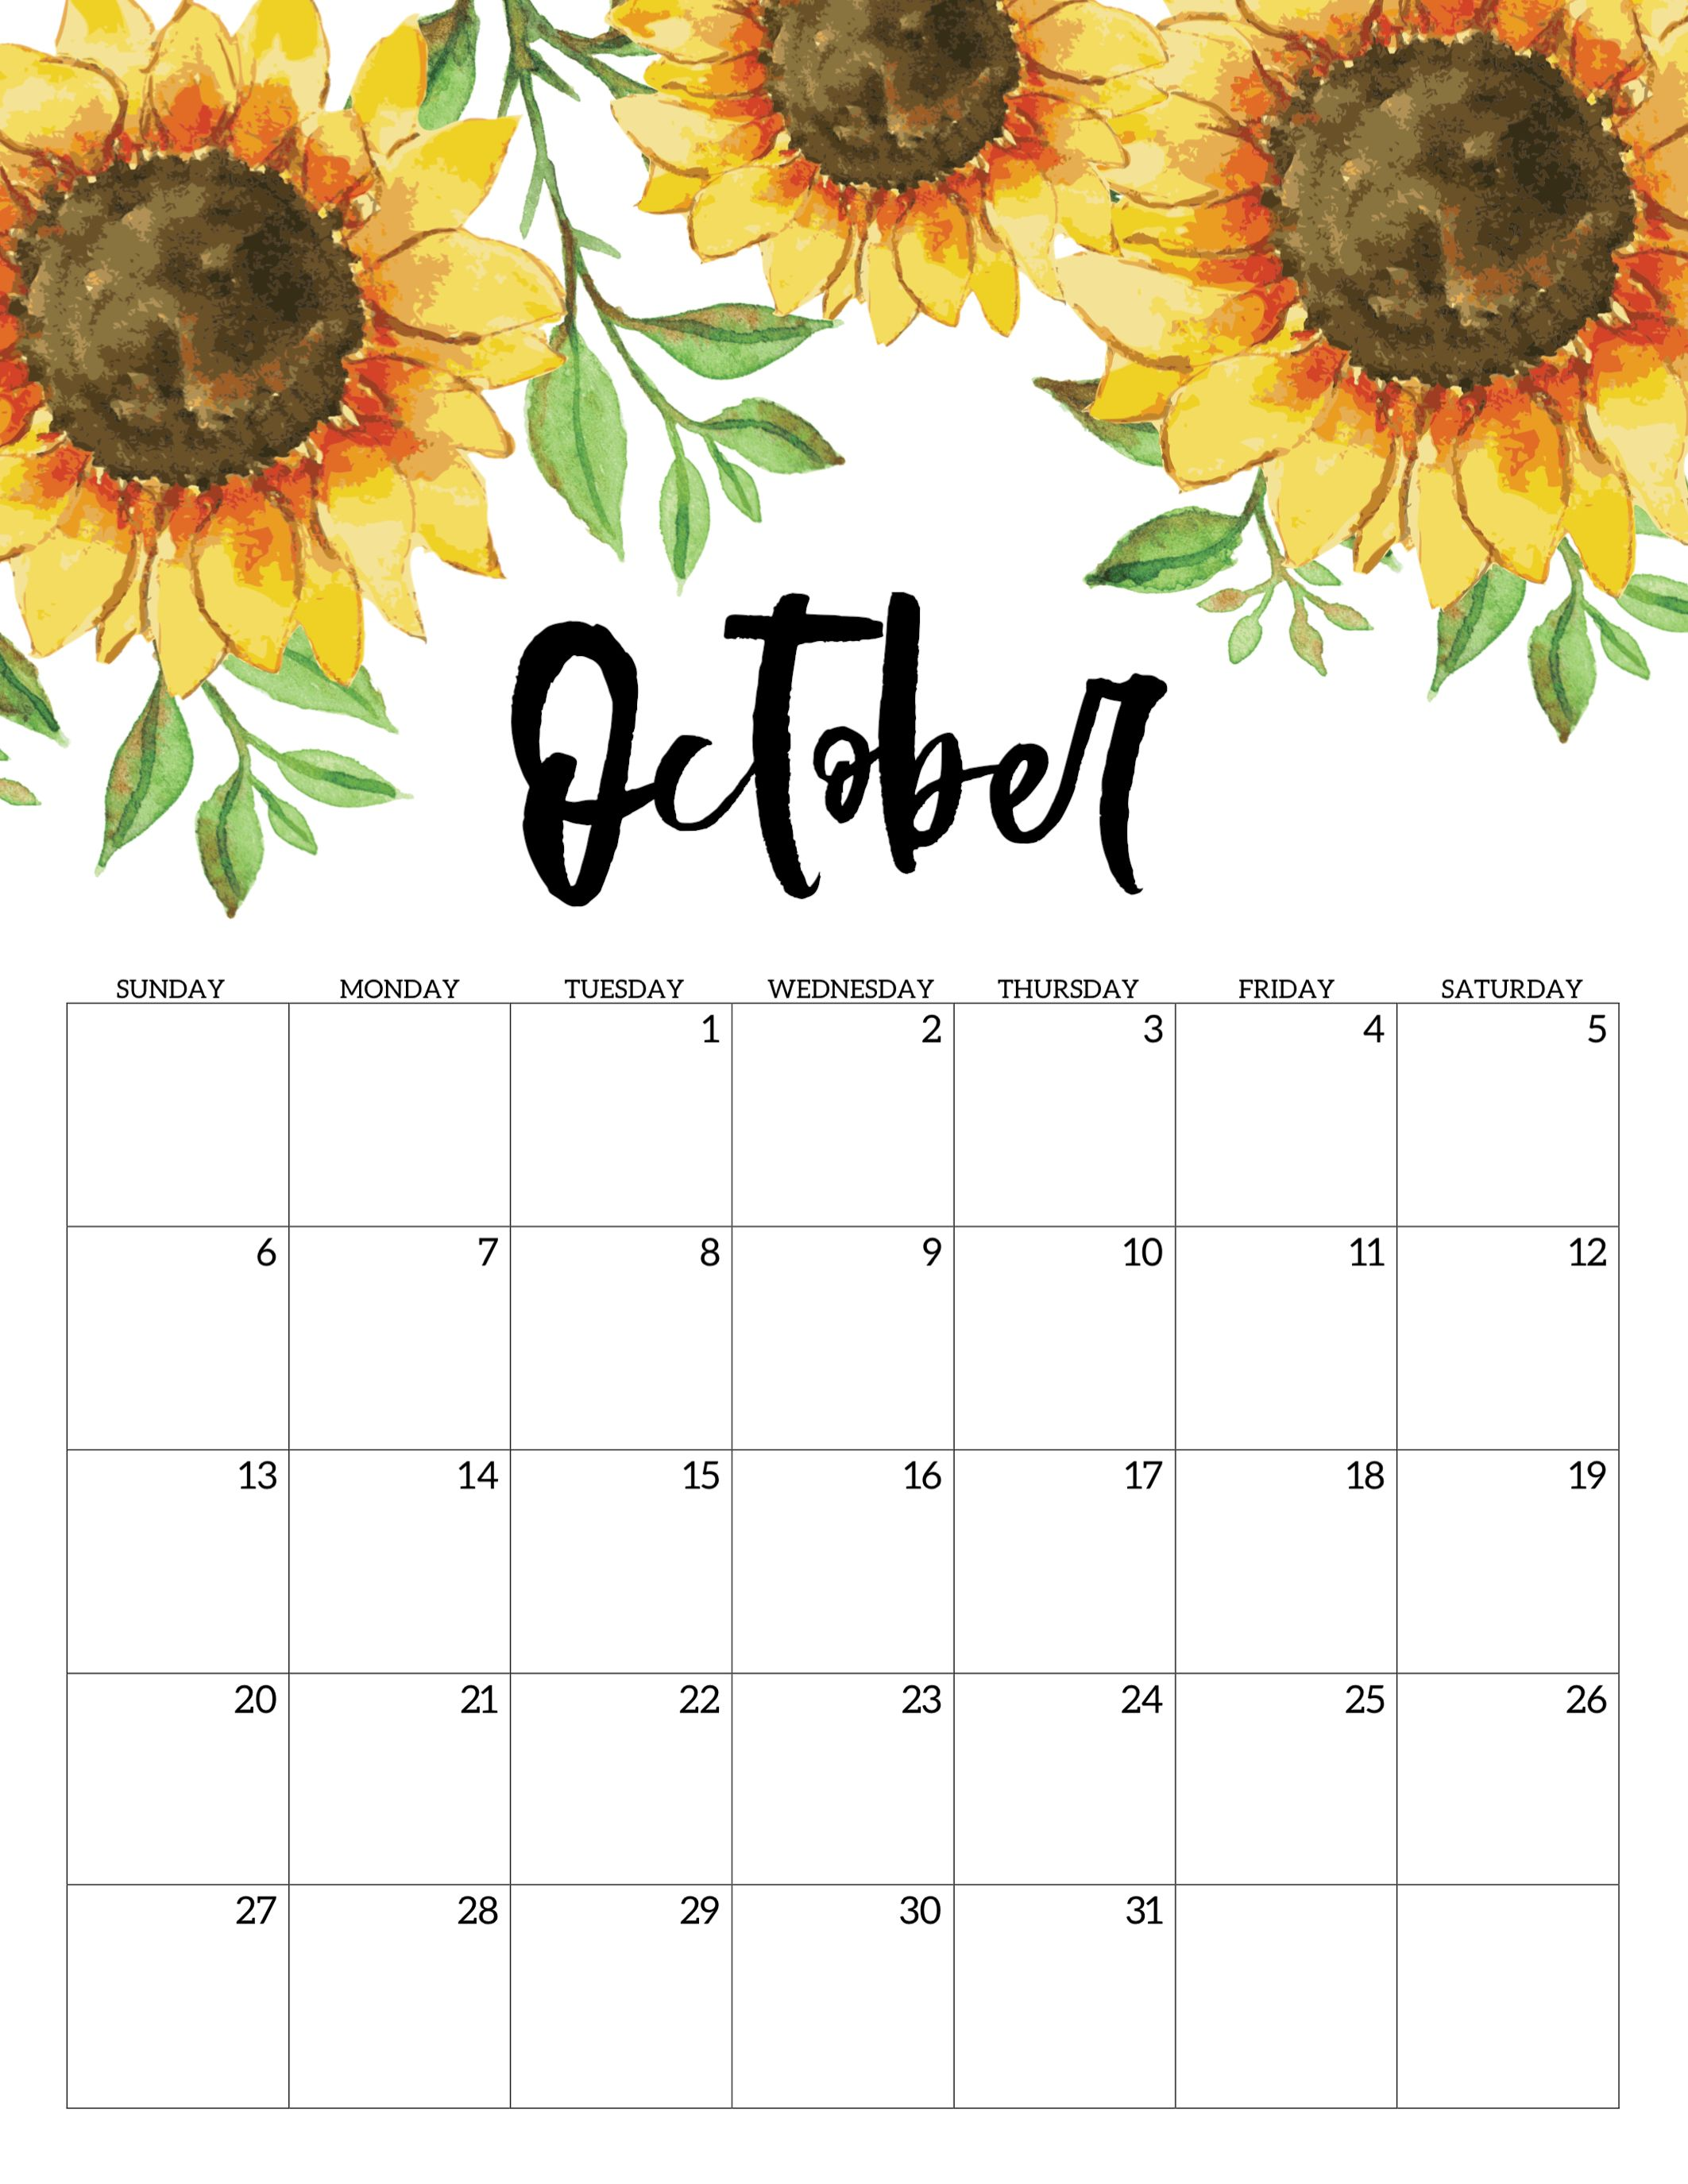 Cool Calendar Printable By Month 2020 October Halloween For School October Floral Calendar 2019 #october #oct2019 #october2019